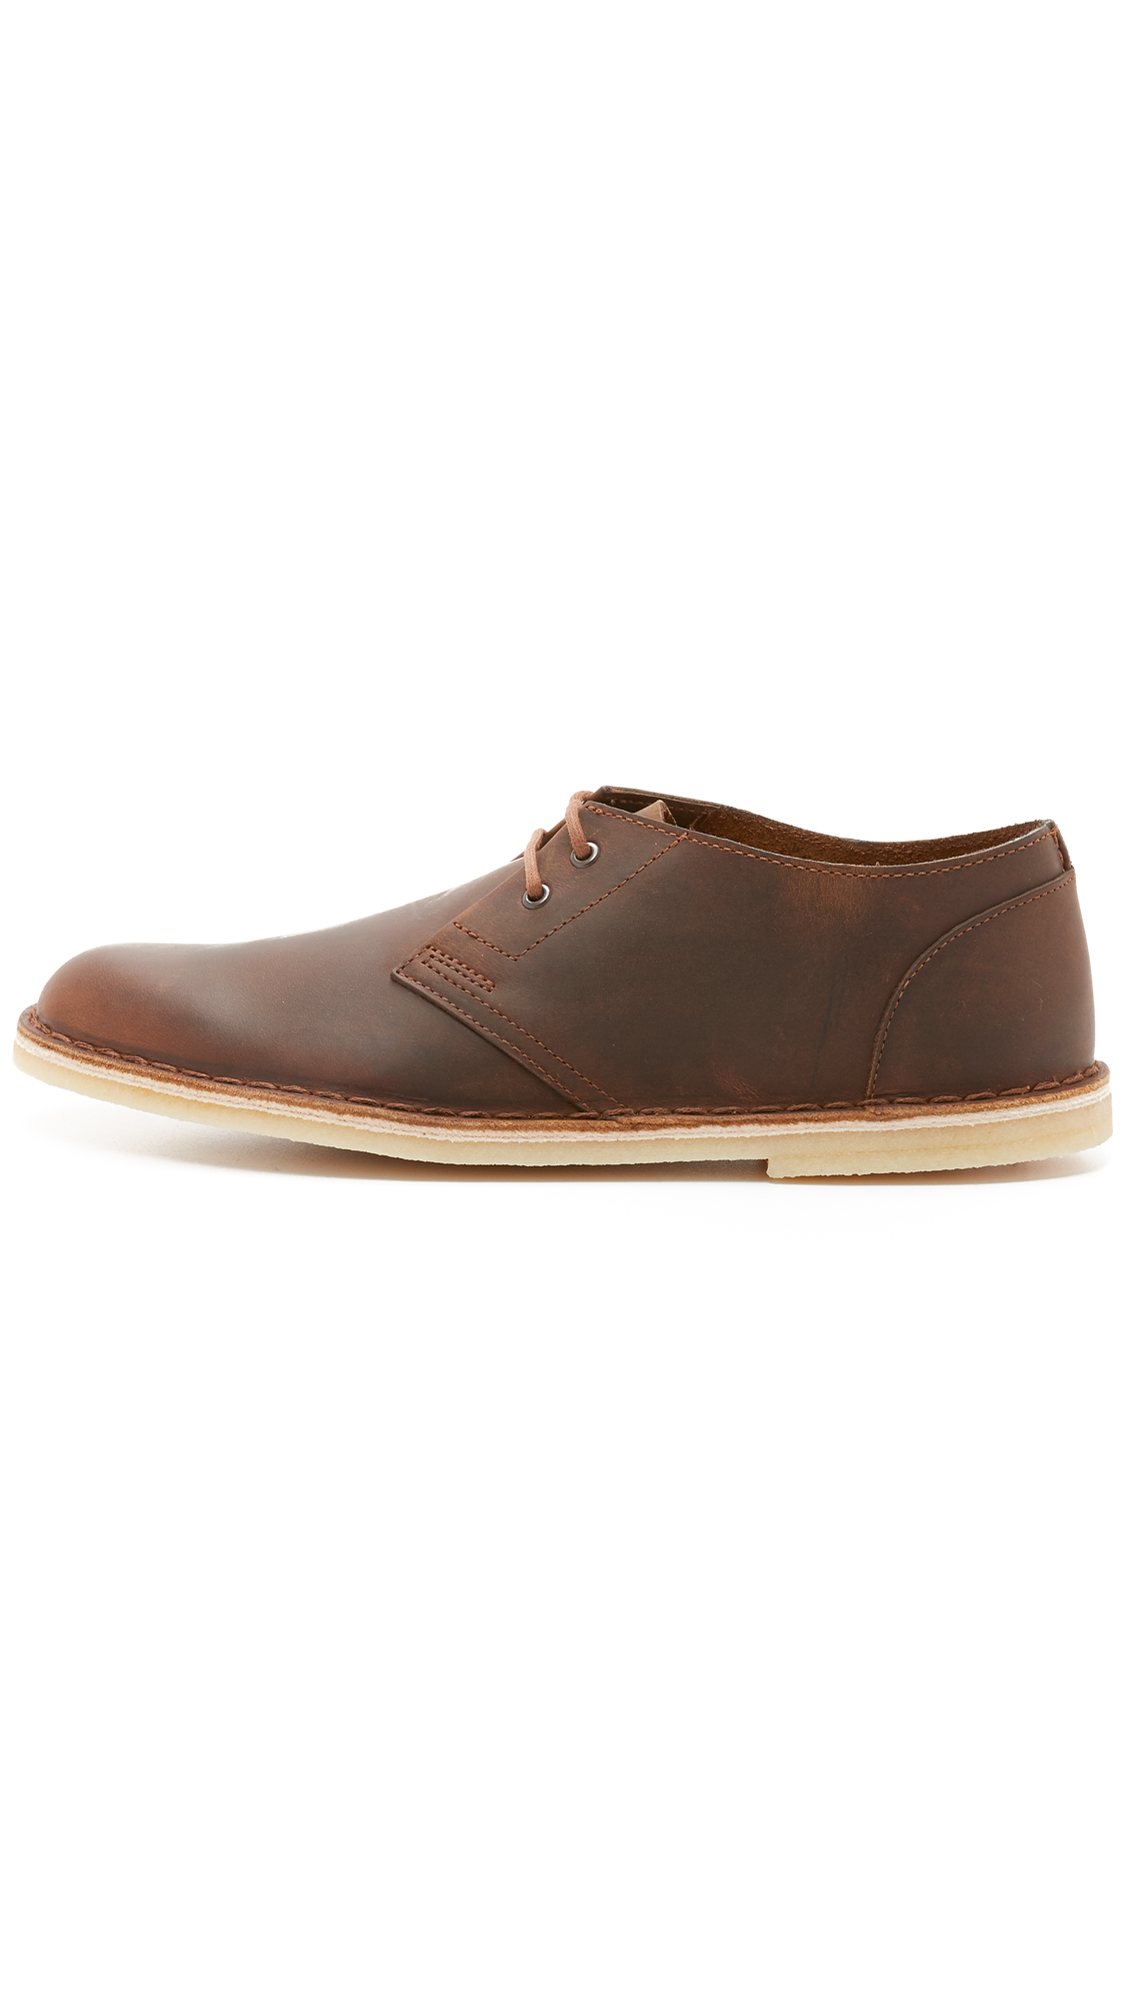 clarks leather jink shoes in brown for lyst